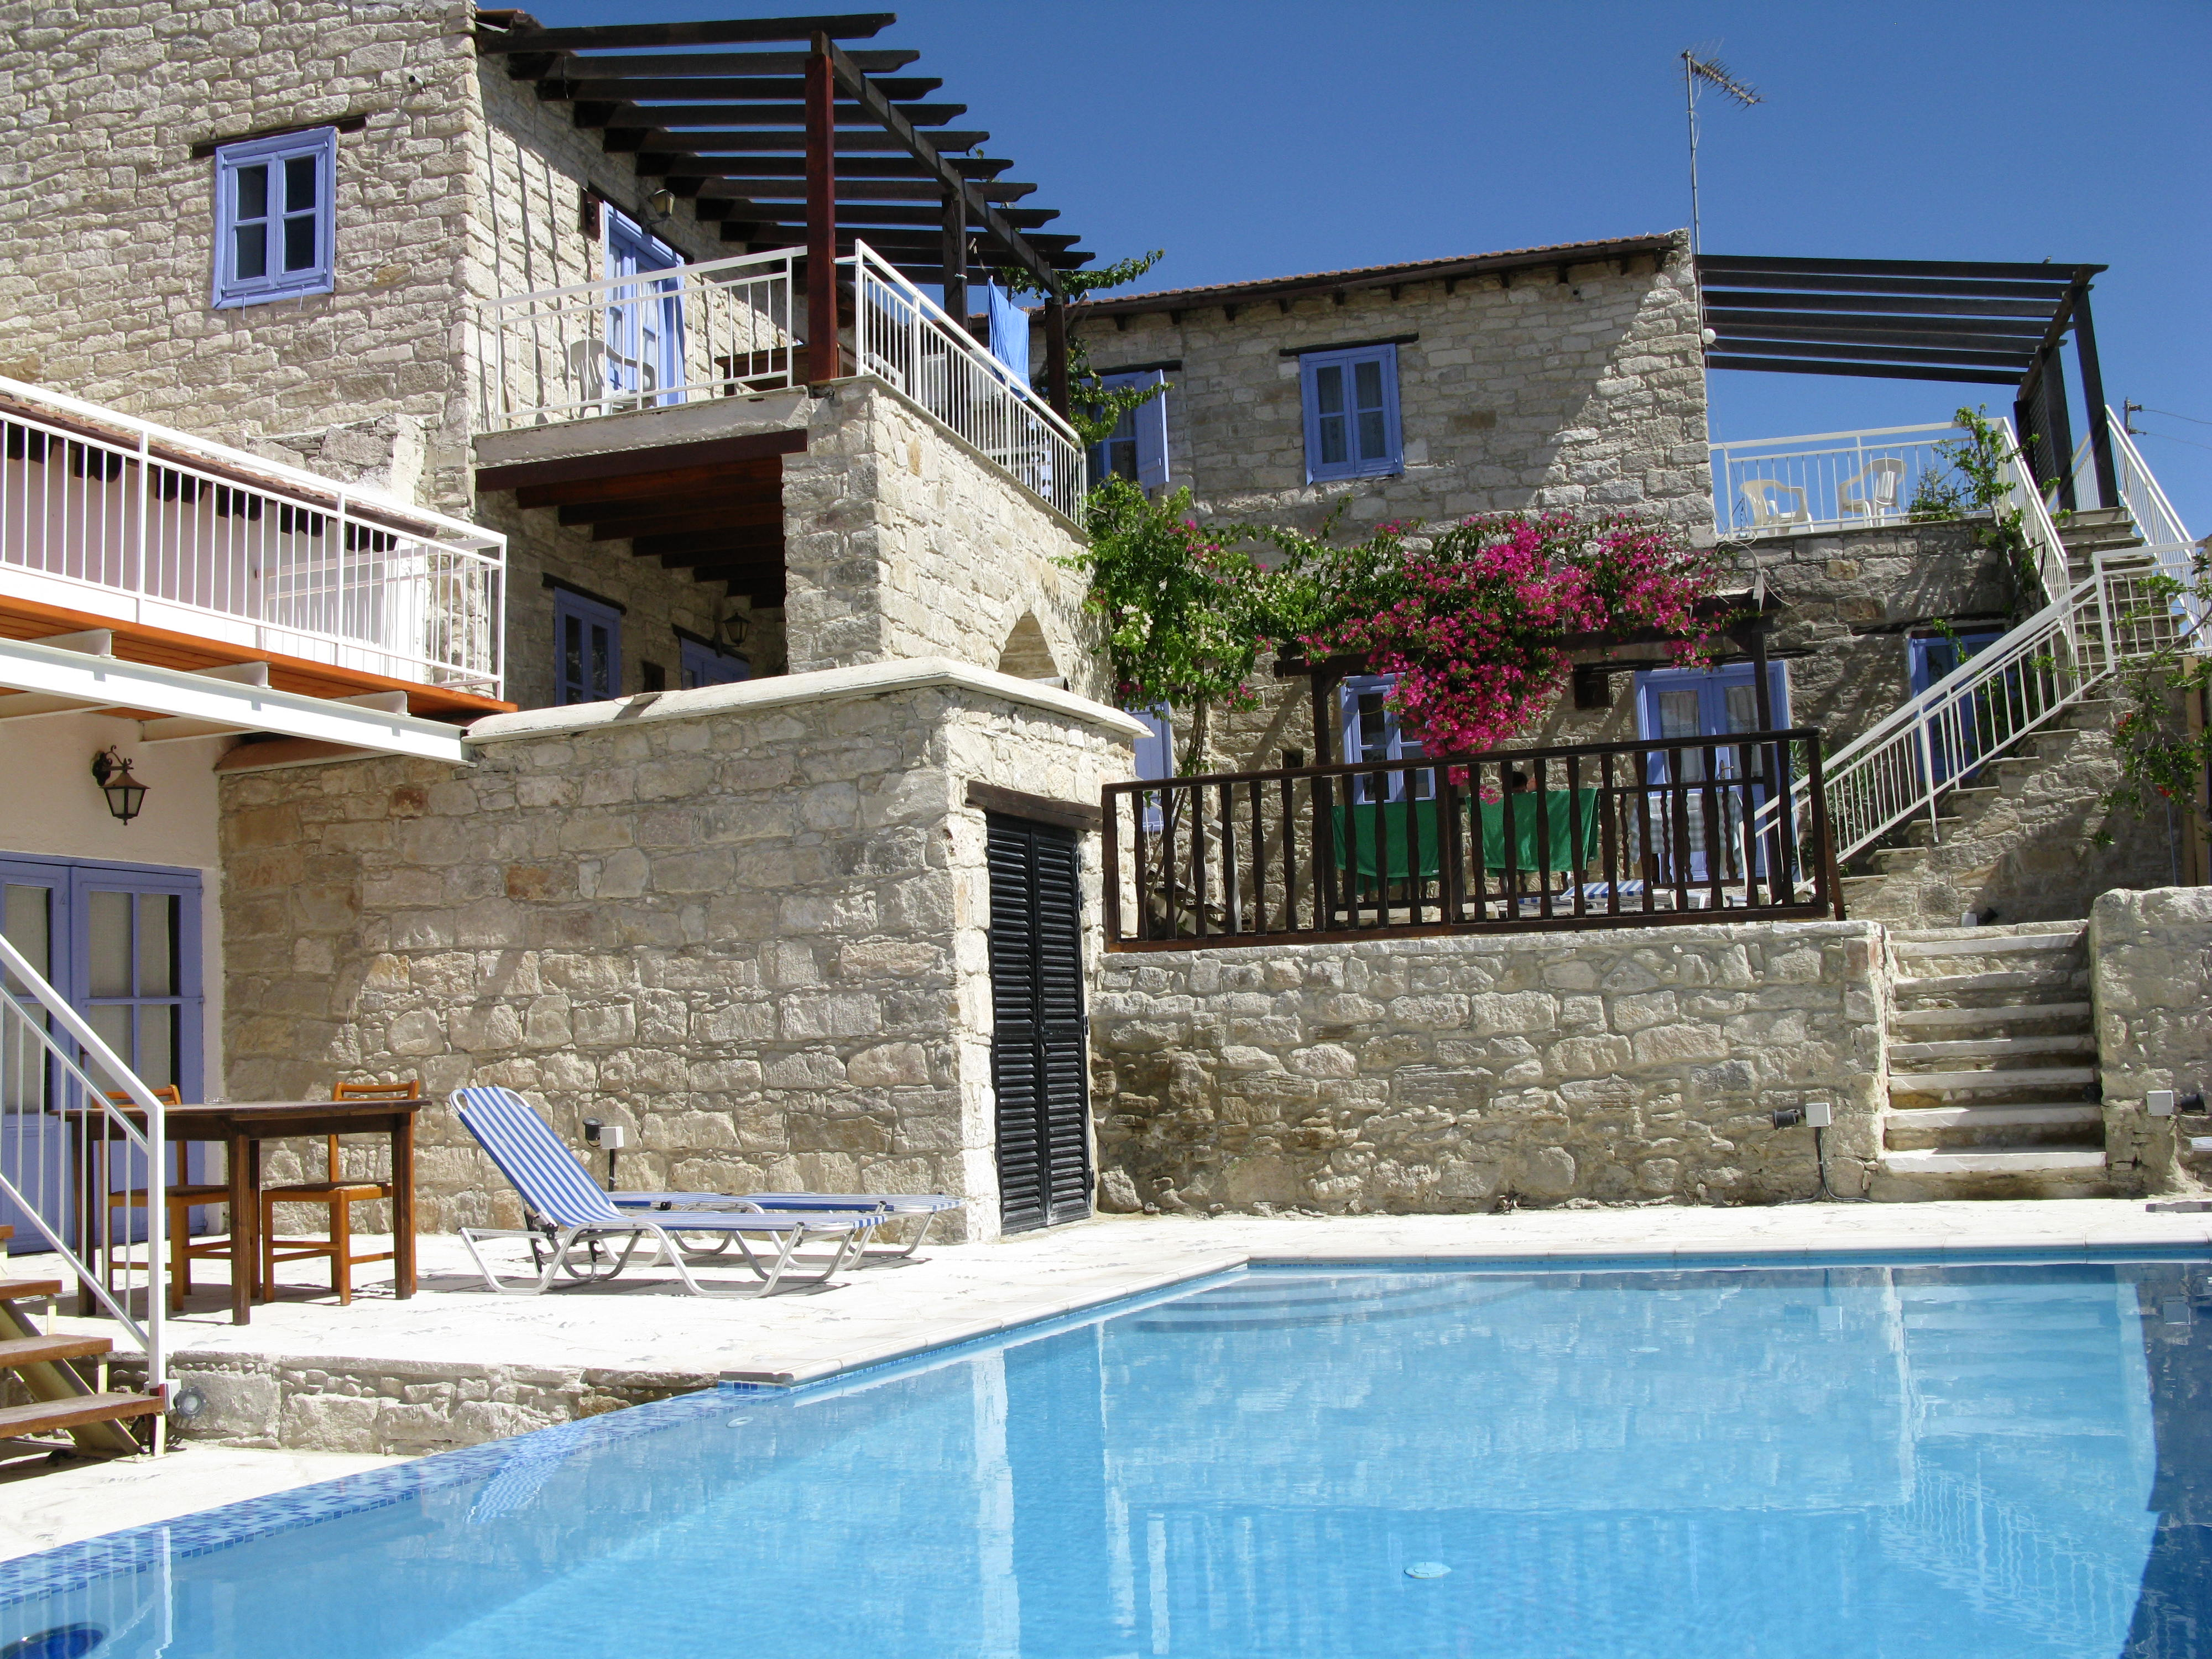 Cyprus Villages, Stuido, 1 and 2 bed apartments in Tochni.